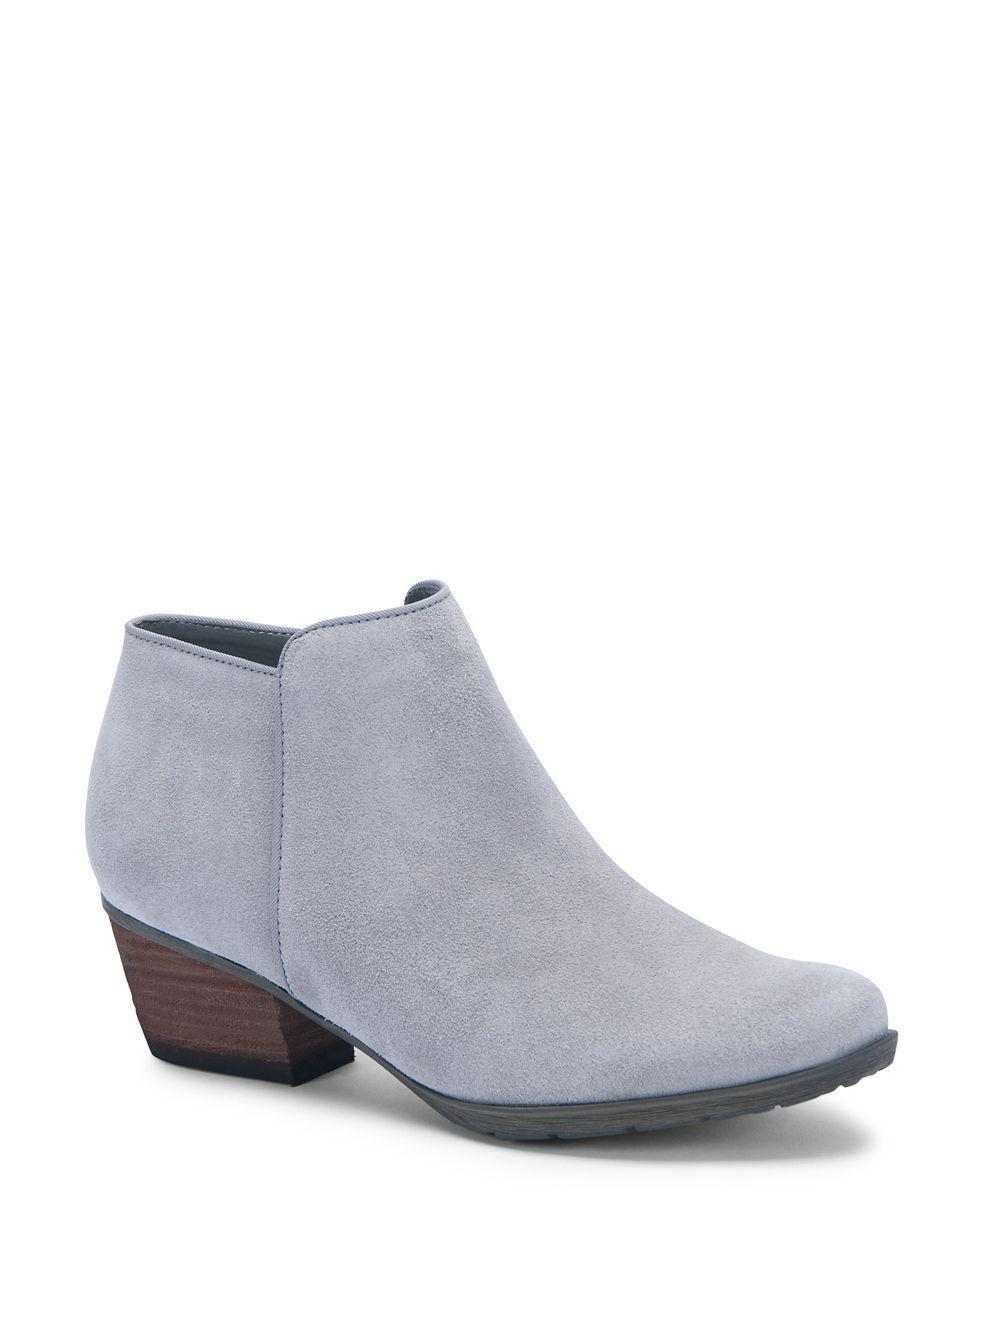 7d535713a18cd Lyst - Blondo Villa Suede Ankle Boots in Gray